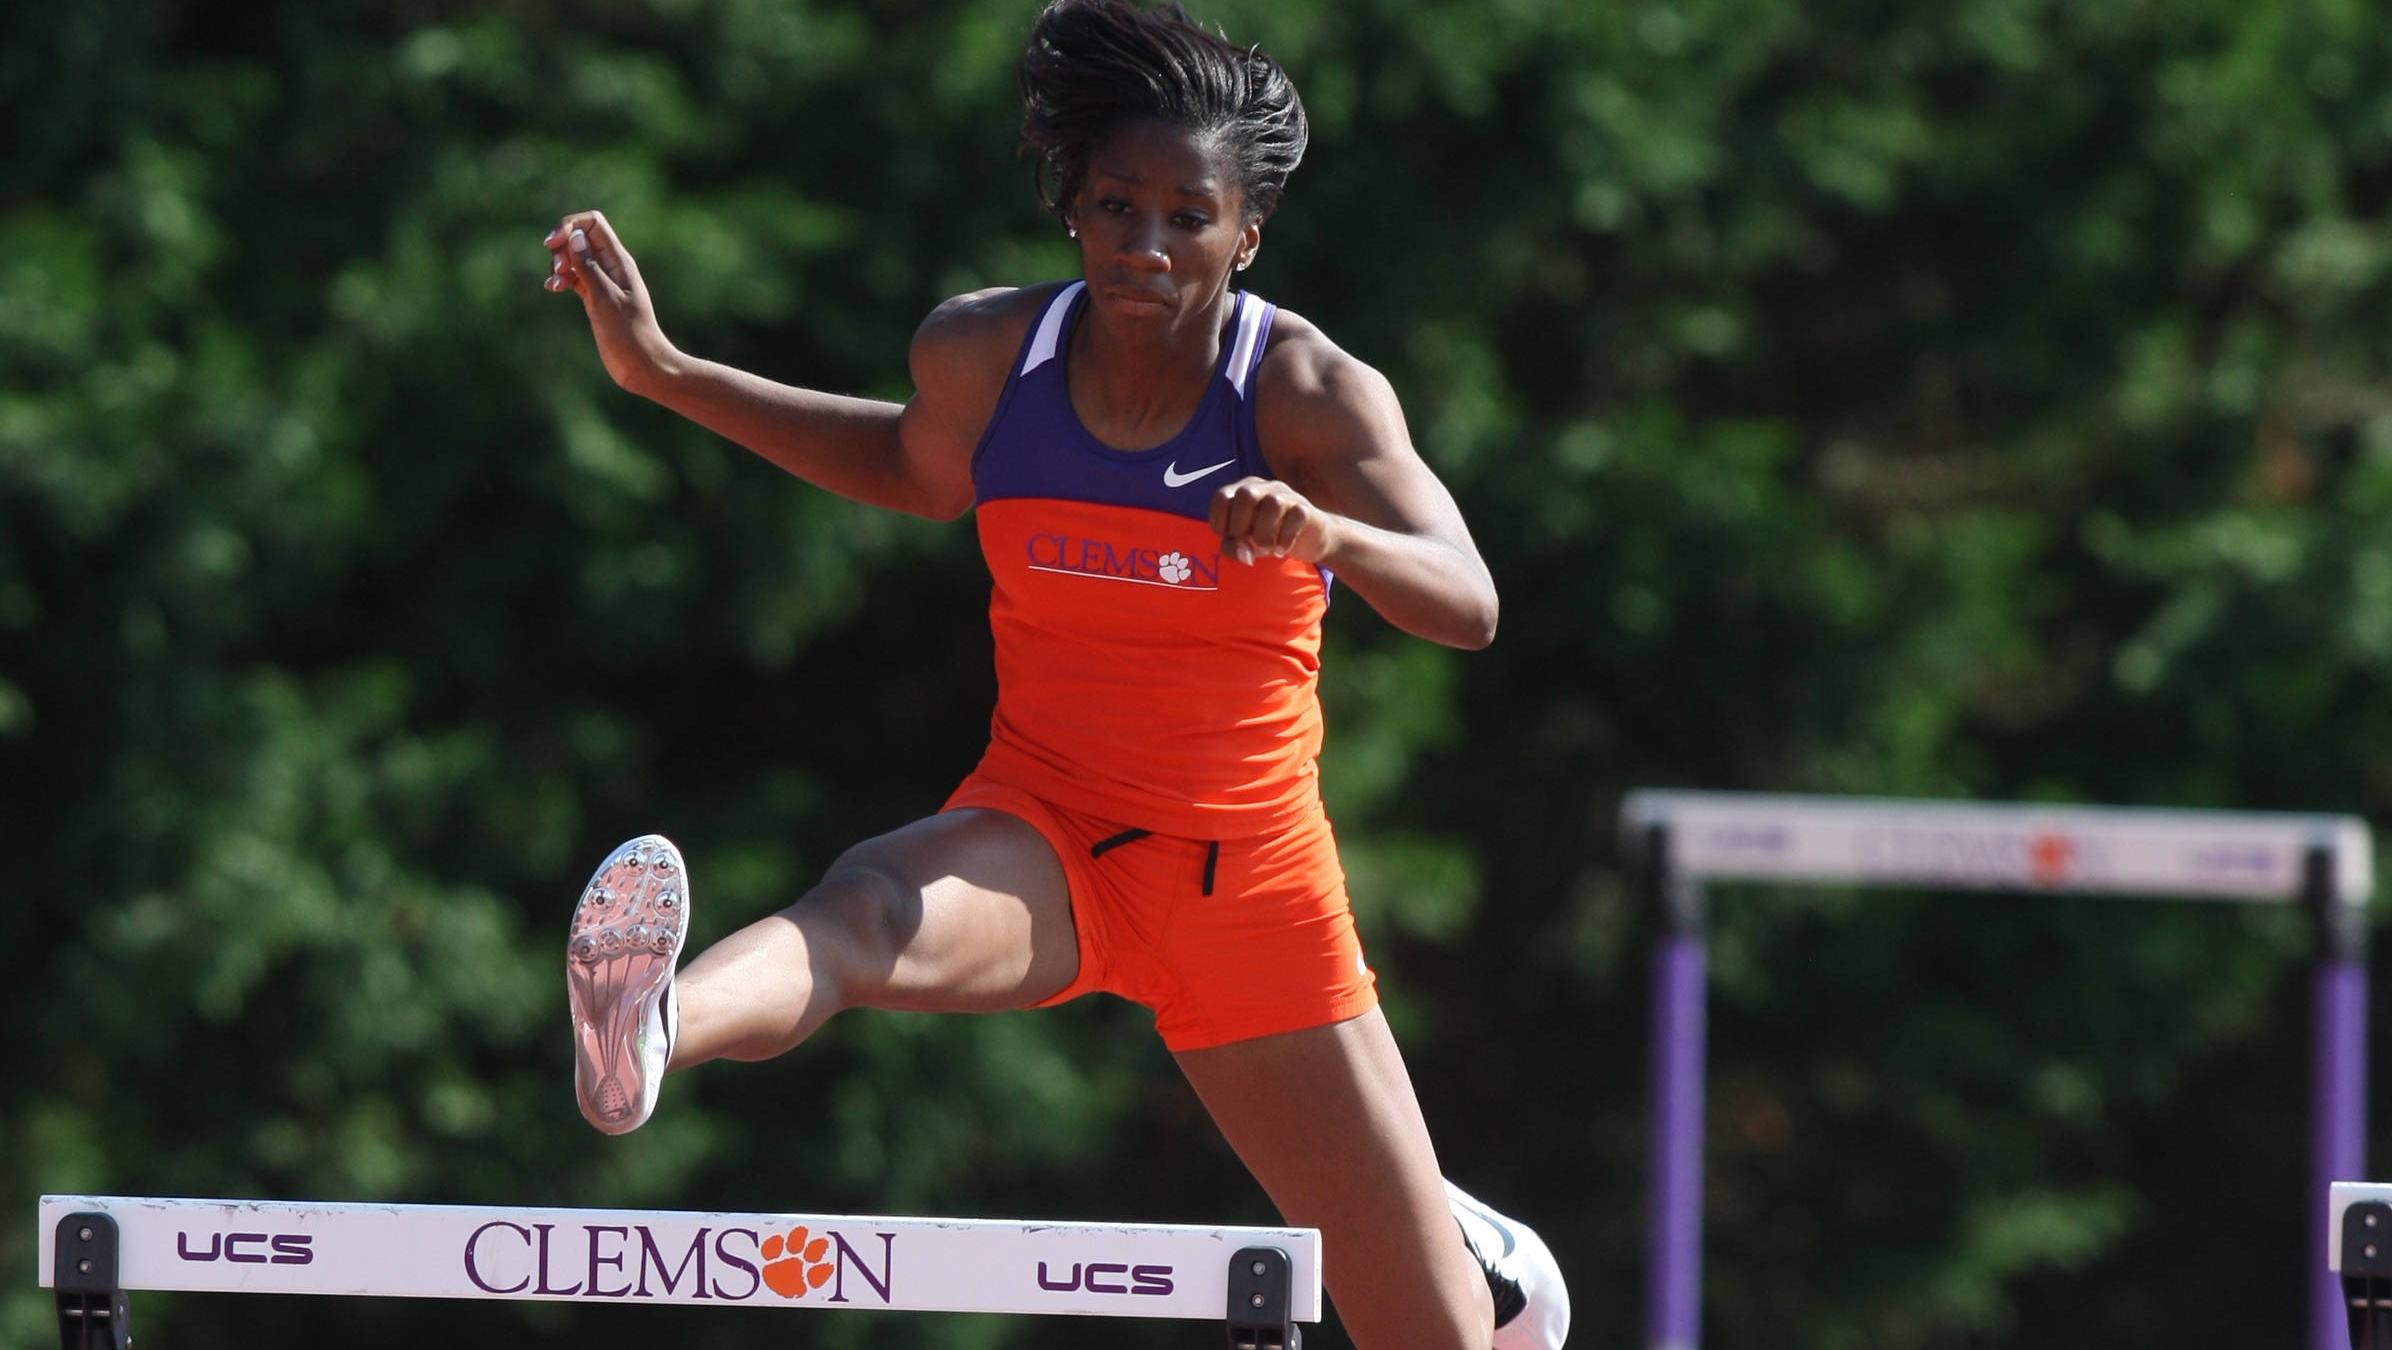 Harrison Takes Fourth Place in 400 Hurdles at NCAA Outdoor Championships